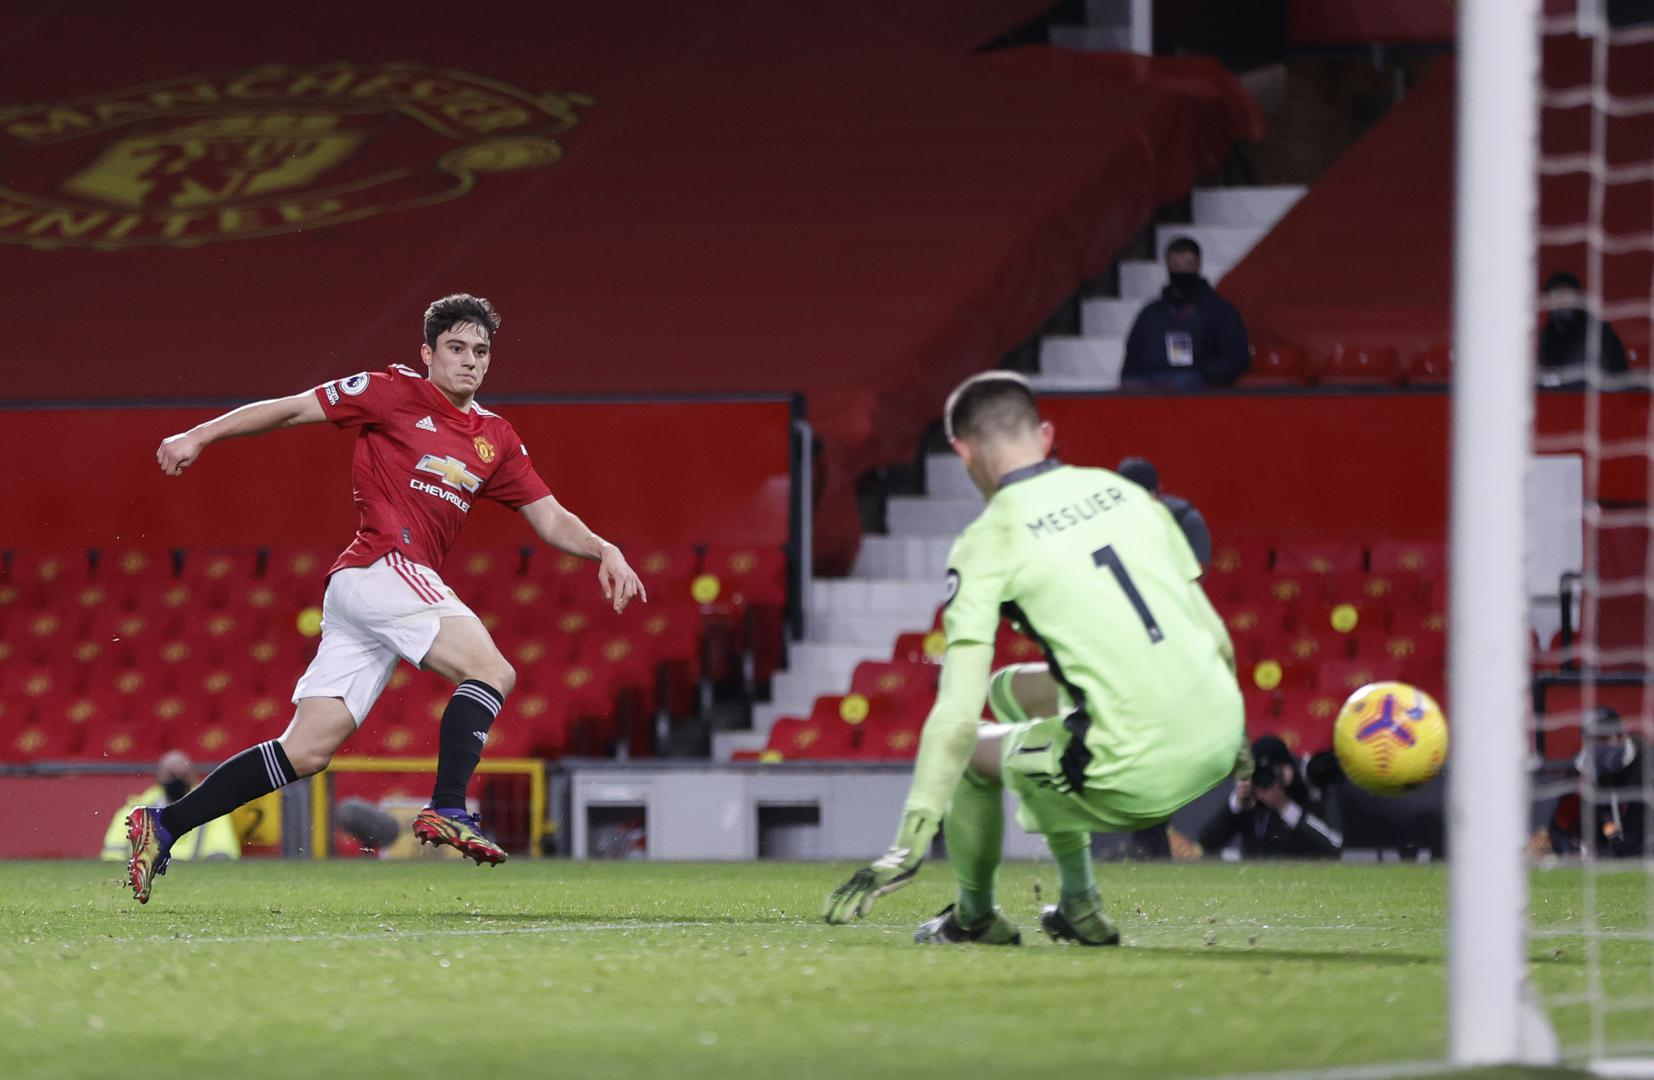 Daniel James scores Manchester United's fifth goal against Leeds United